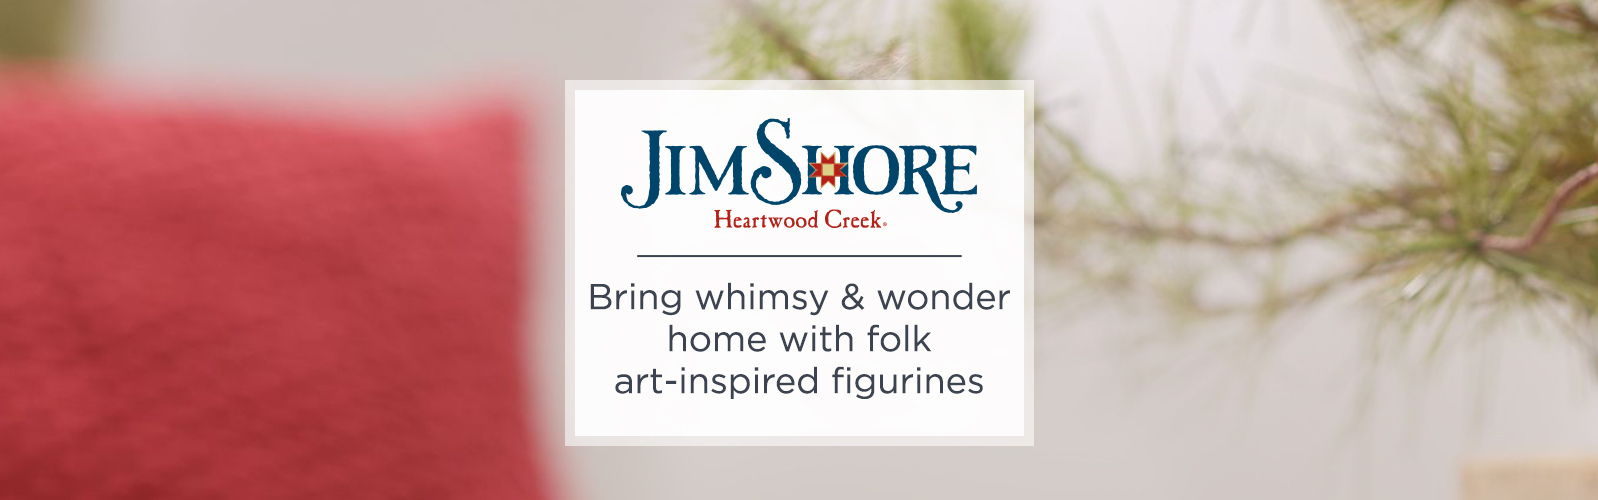 Jim Shore - Bring whimsy & wonder home with folk art-inspired figurines